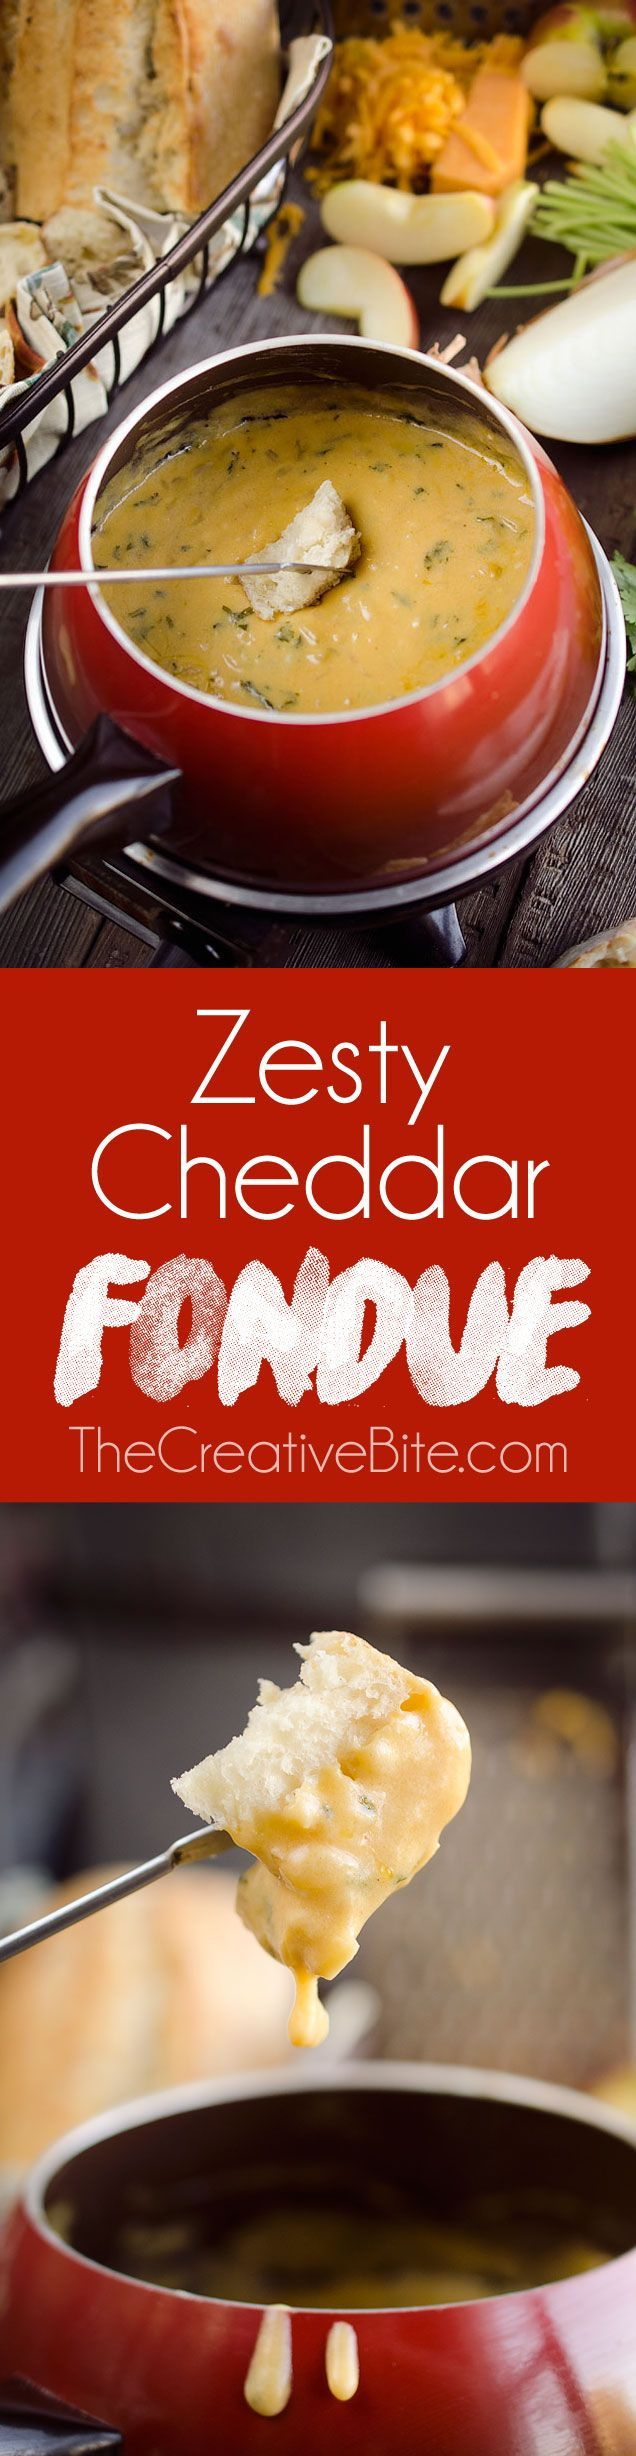 Zesty Cheddar Fondue is an easy and delicious appetizer perfect for the holidays. It is a creamy cheese fondue filled with rich sharp cheddar, onions, garlic and cilantro that pairs perfectly with bread and apples. #Fondue #Cheese #Appetizer #Holidays #fonduecheese